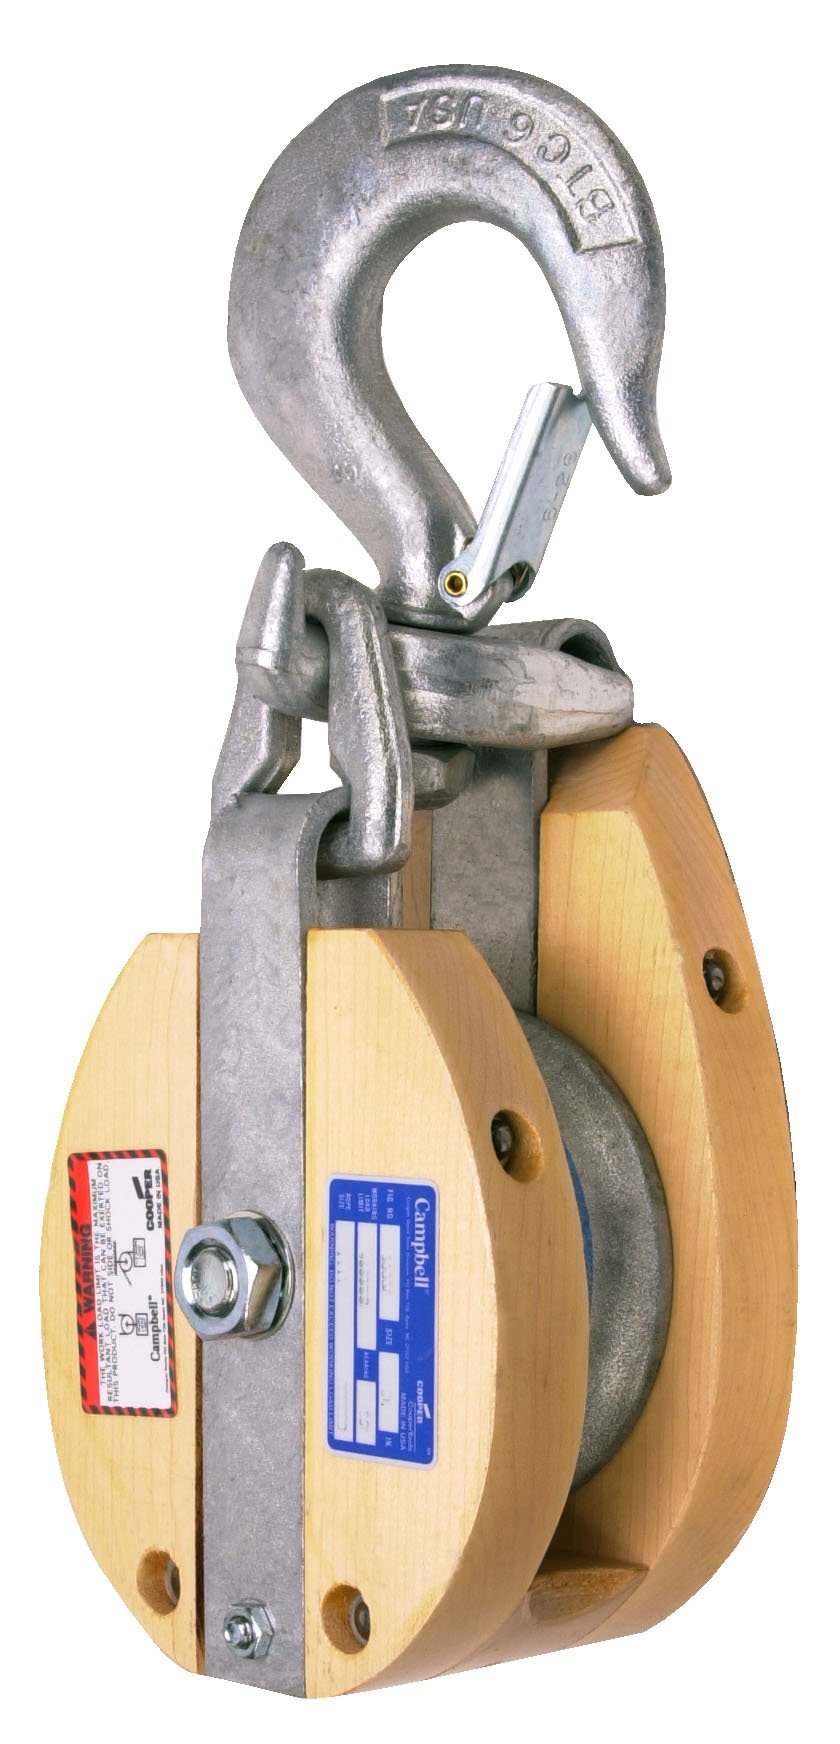 Campbell 3071V 8'' Single Wood Drop Link Snatch Block with Stiff Swivel V Latch Hook, 4800 lbs Load Capacity, 4-1/2'' Sheave by Apex Tool Group